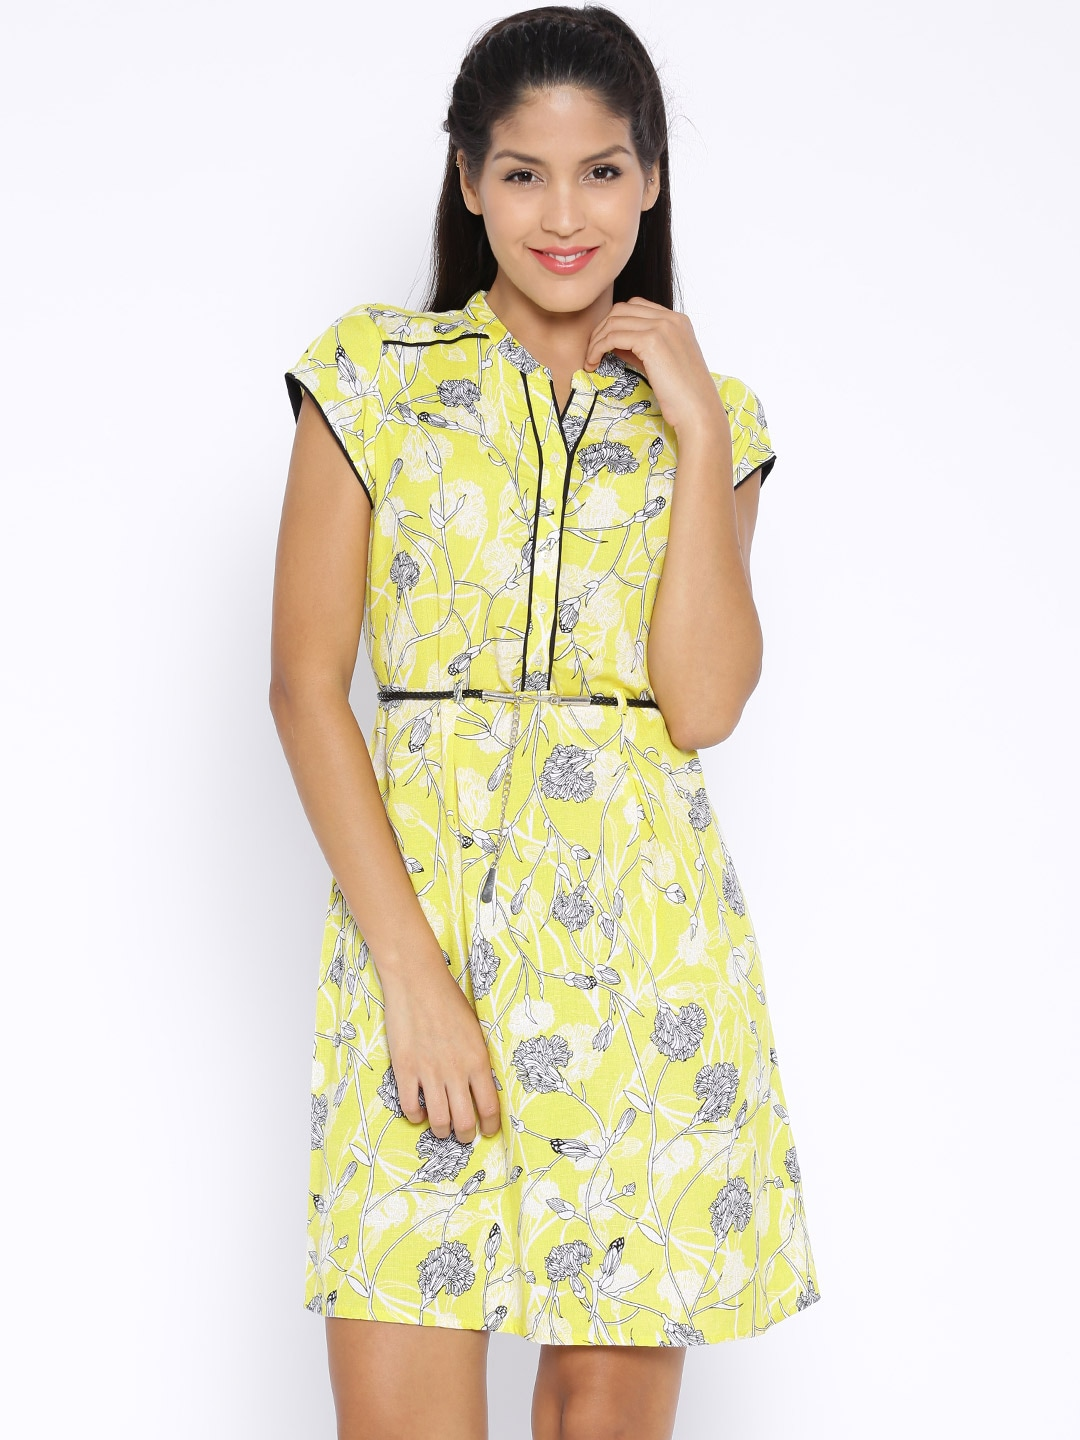 d3be3493f237 109f Apparel - Buy 109f Apparel online in India